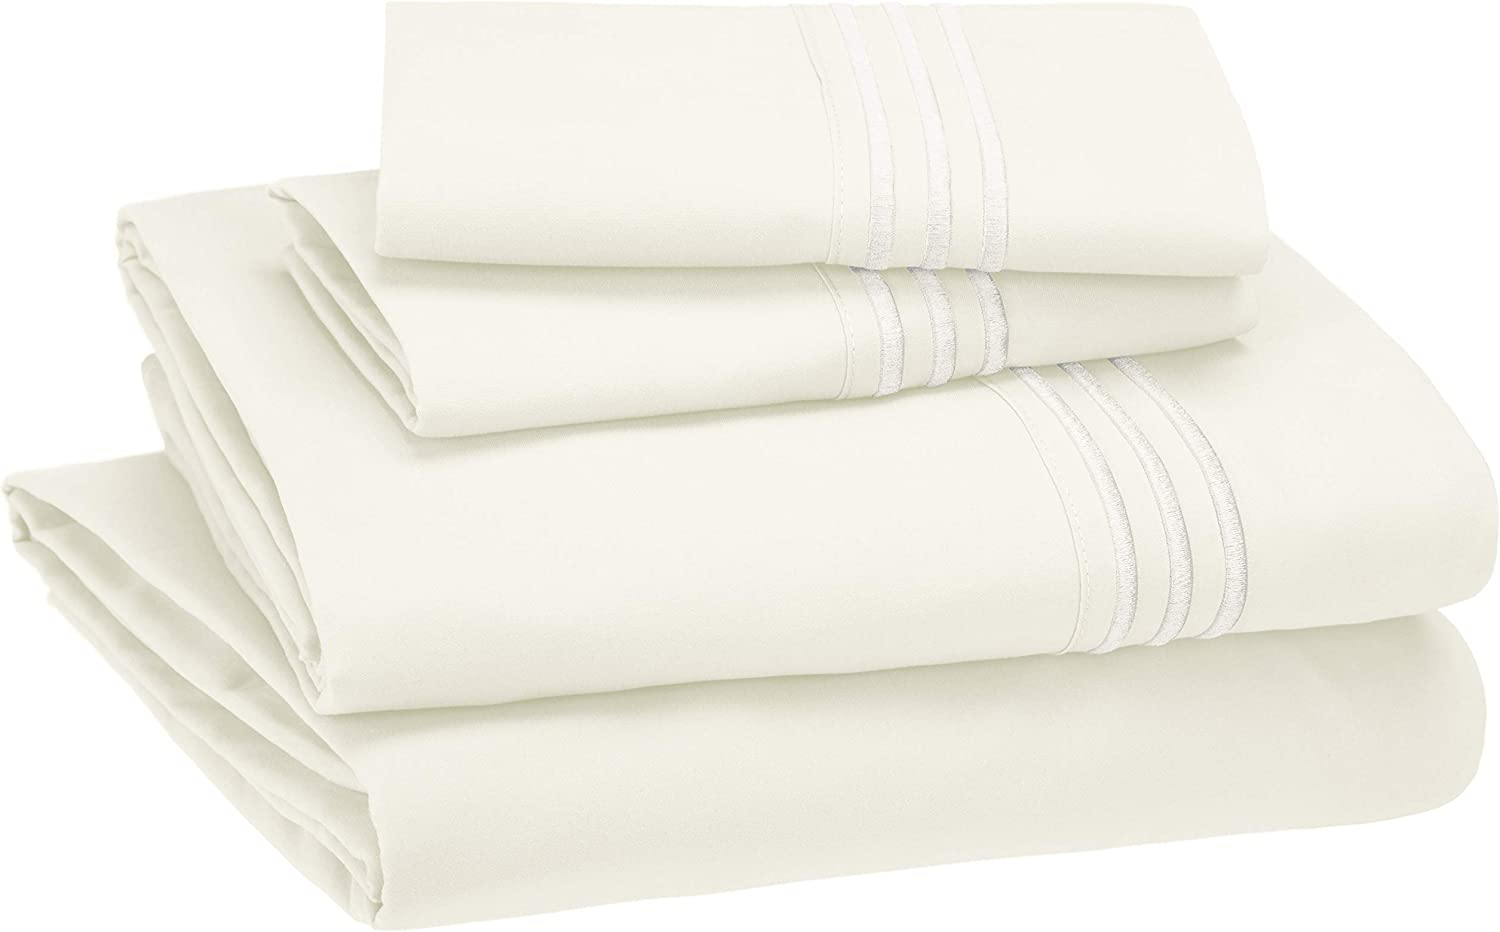 AmazonBasics Premium, Easy-Wash Embroidered Hotel Stitch Sheet Set- King, Off-White